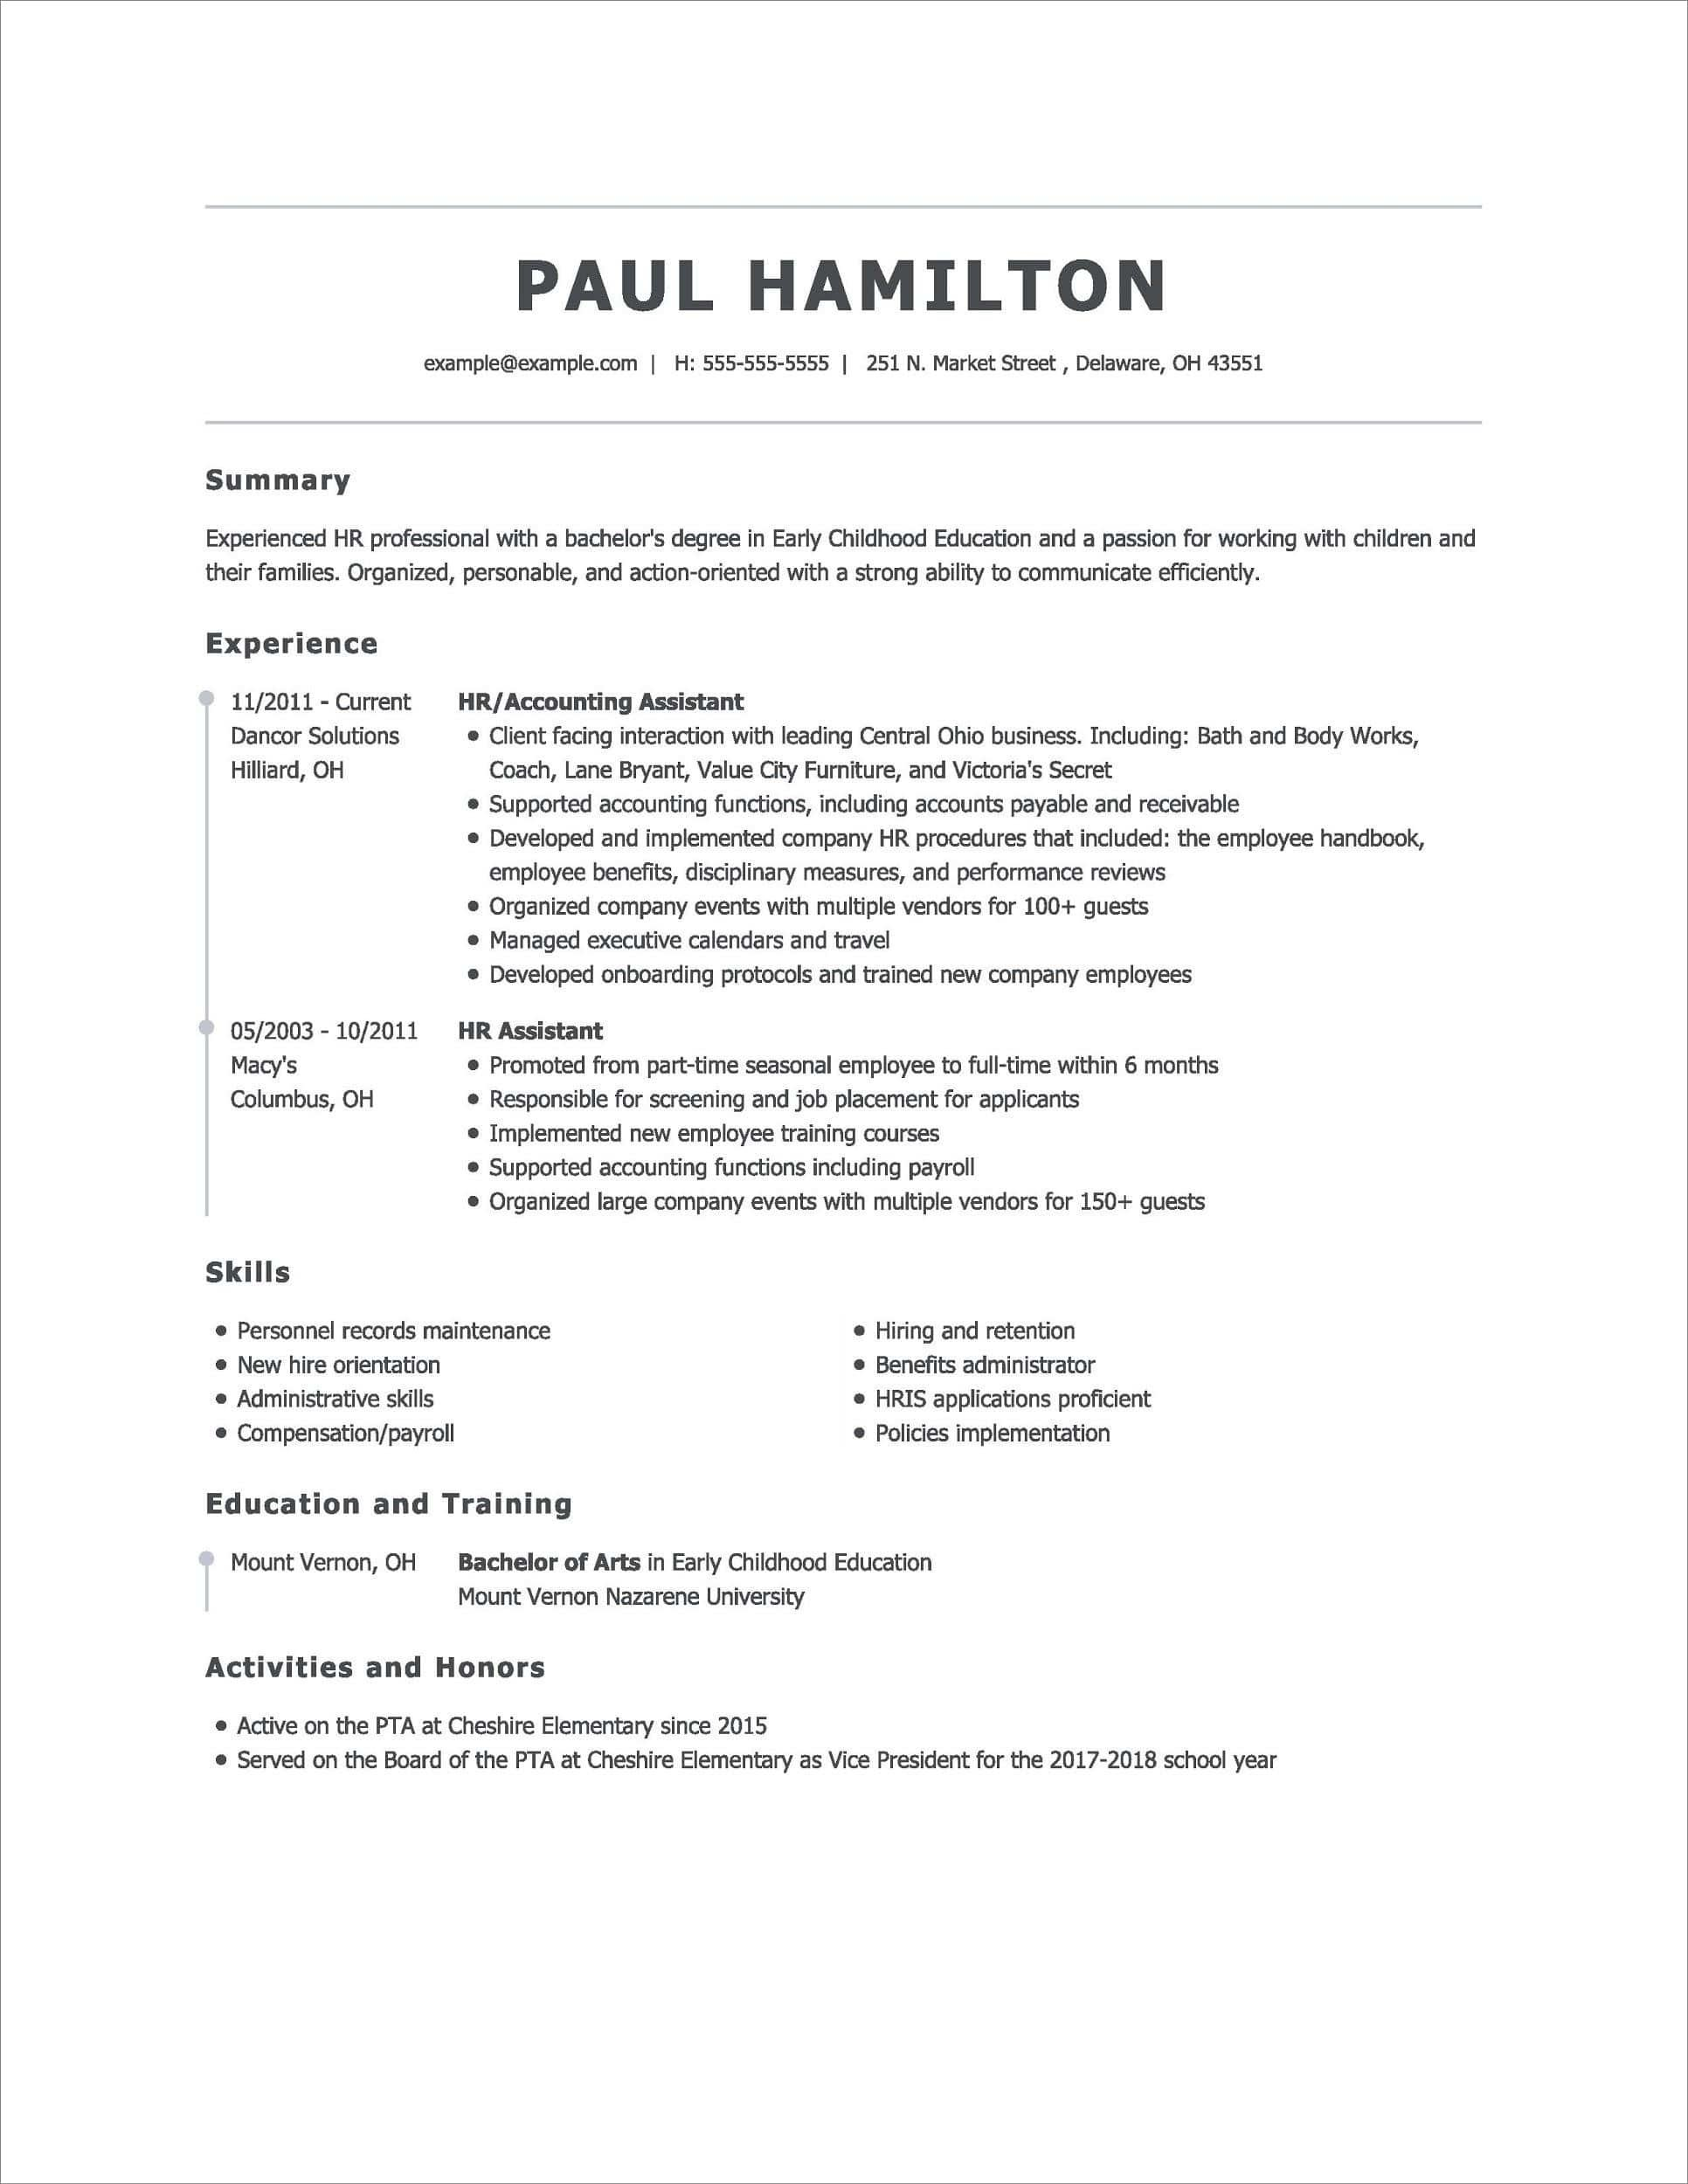 best resume builders free paid features prepare your objective statements templates word Resume Prepare Your Resume Online